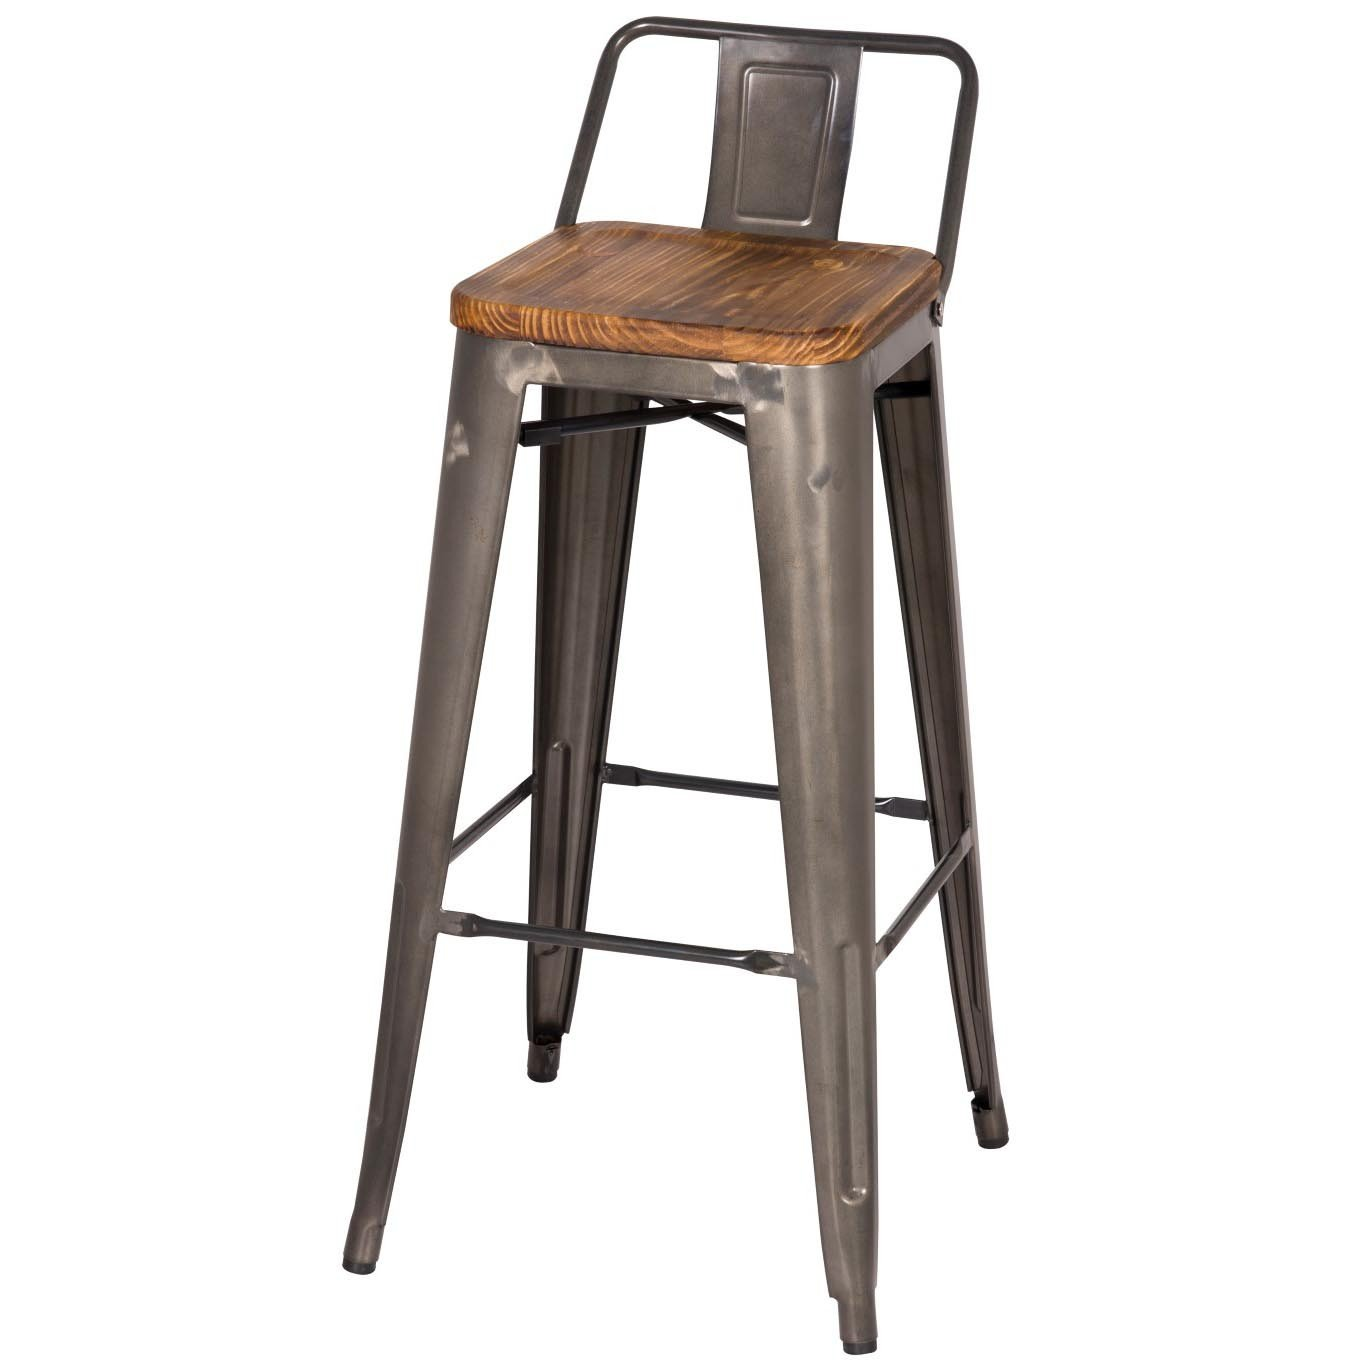 Remarkable Metropolis Low Back Bar Stool Wood Seat Gunmetal Squirreltailoven Fun Painted Chair Ideas Images Squirreltailovenorg